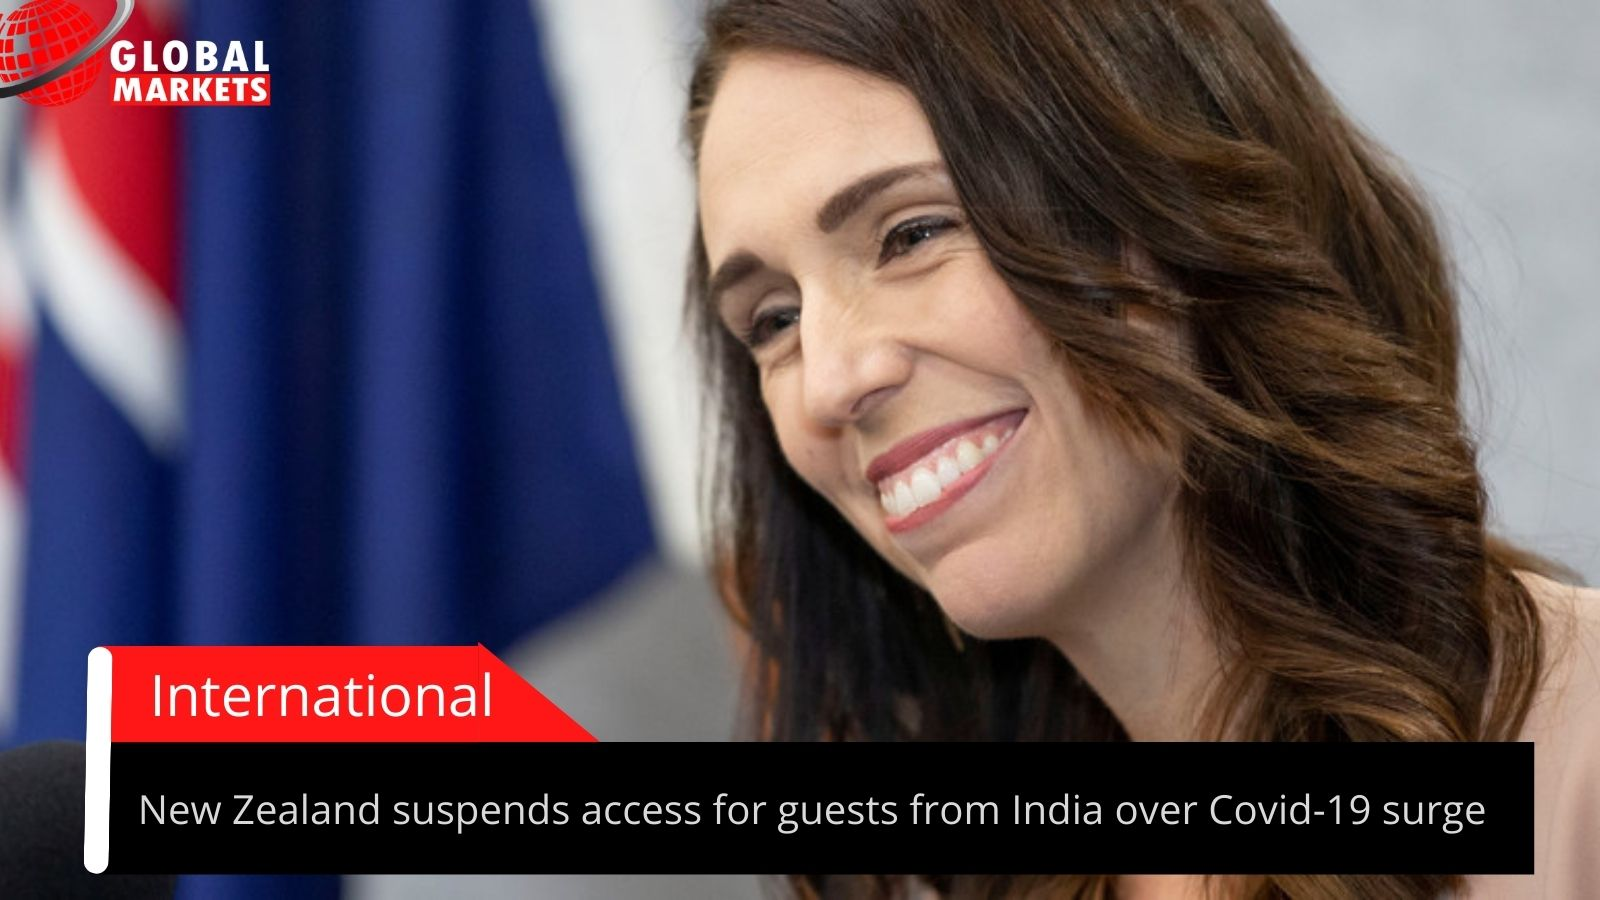 New Zealand suspends access for guests from India over Covid-19 surge